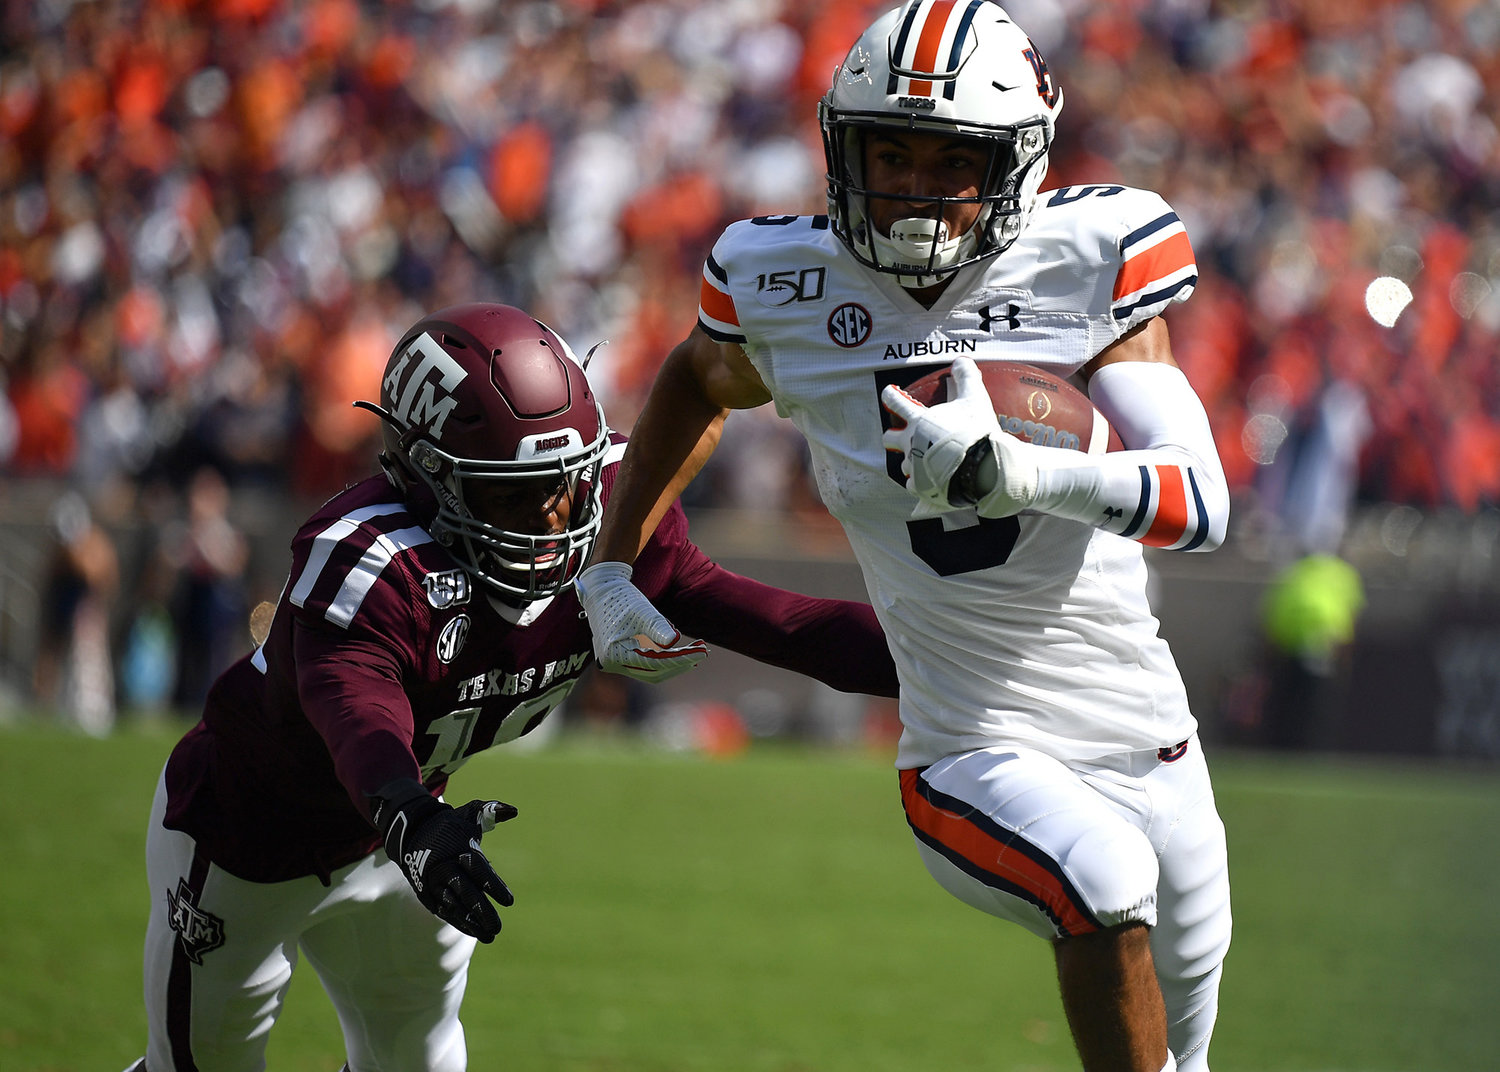 Auburn Tigers wide receiver Anthony Schwartz (5) on a run during the first half of an NCAA football game against the Texas A&M Aggies Saturday, Sept. 21, 2019, at Kyle Field in College Station Texas. Auburn wins 28-20.